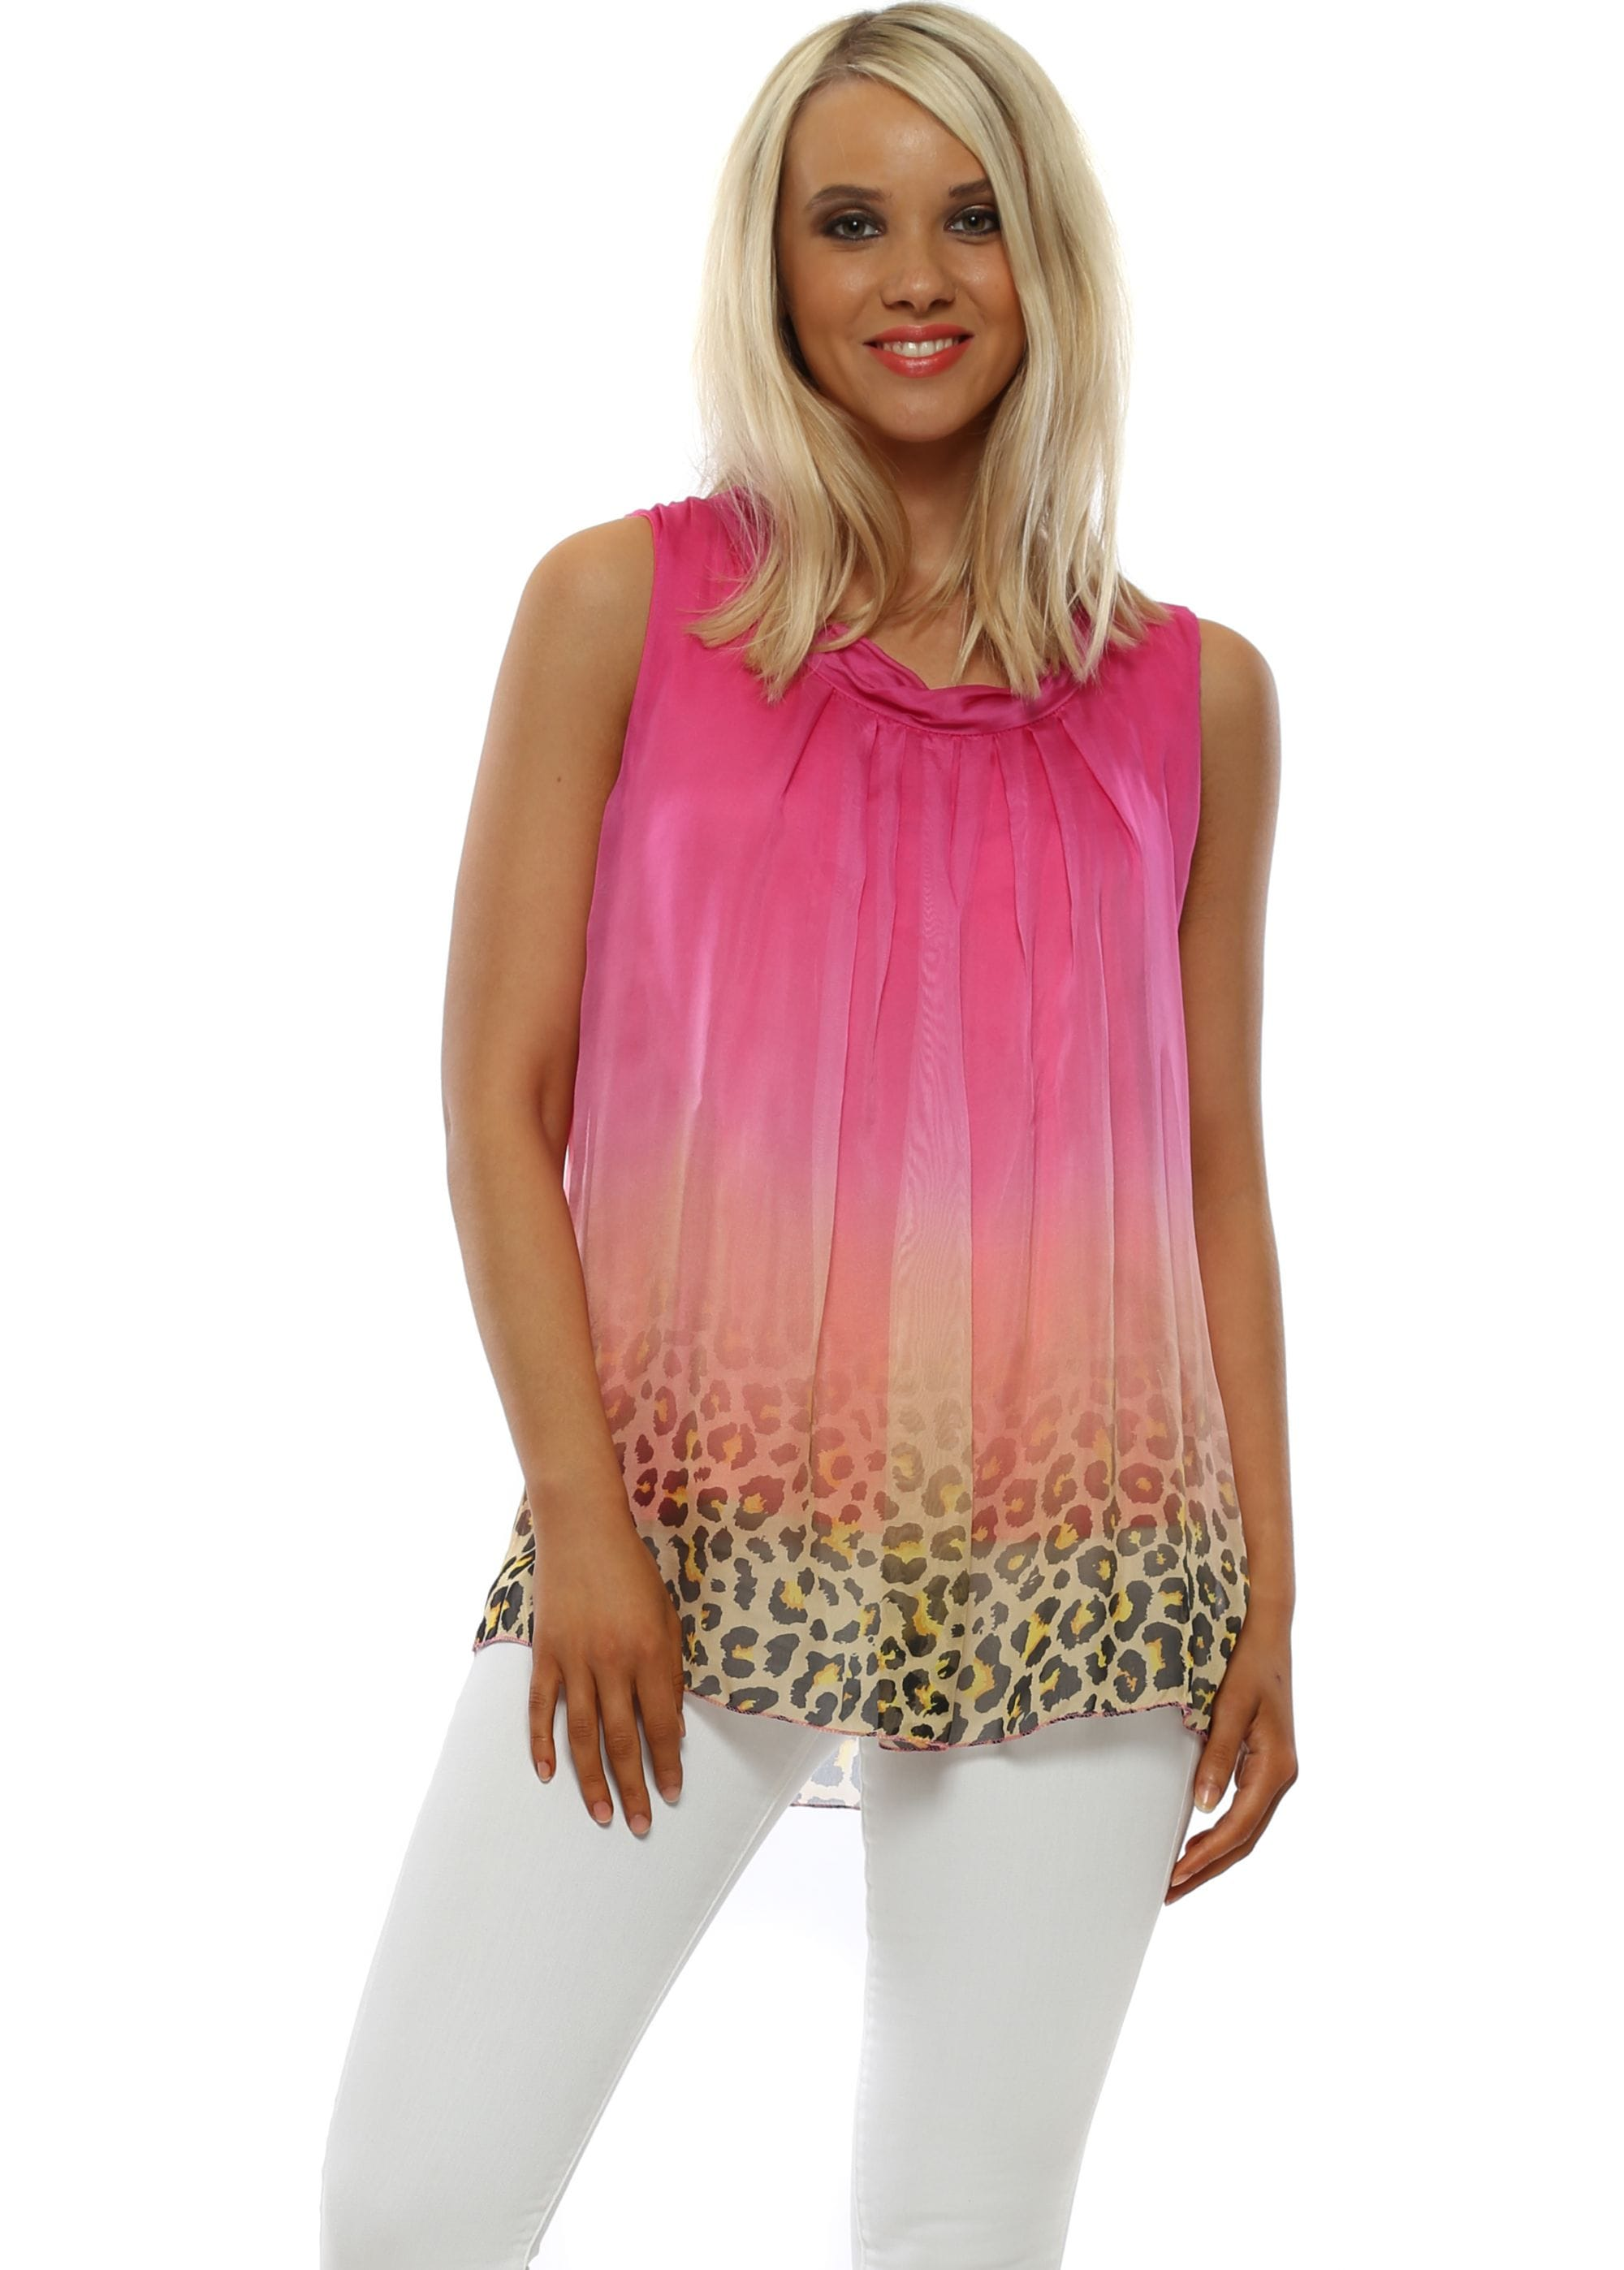 49e8a39db4a Fucshia Ombre Leopard Sleeveless Top